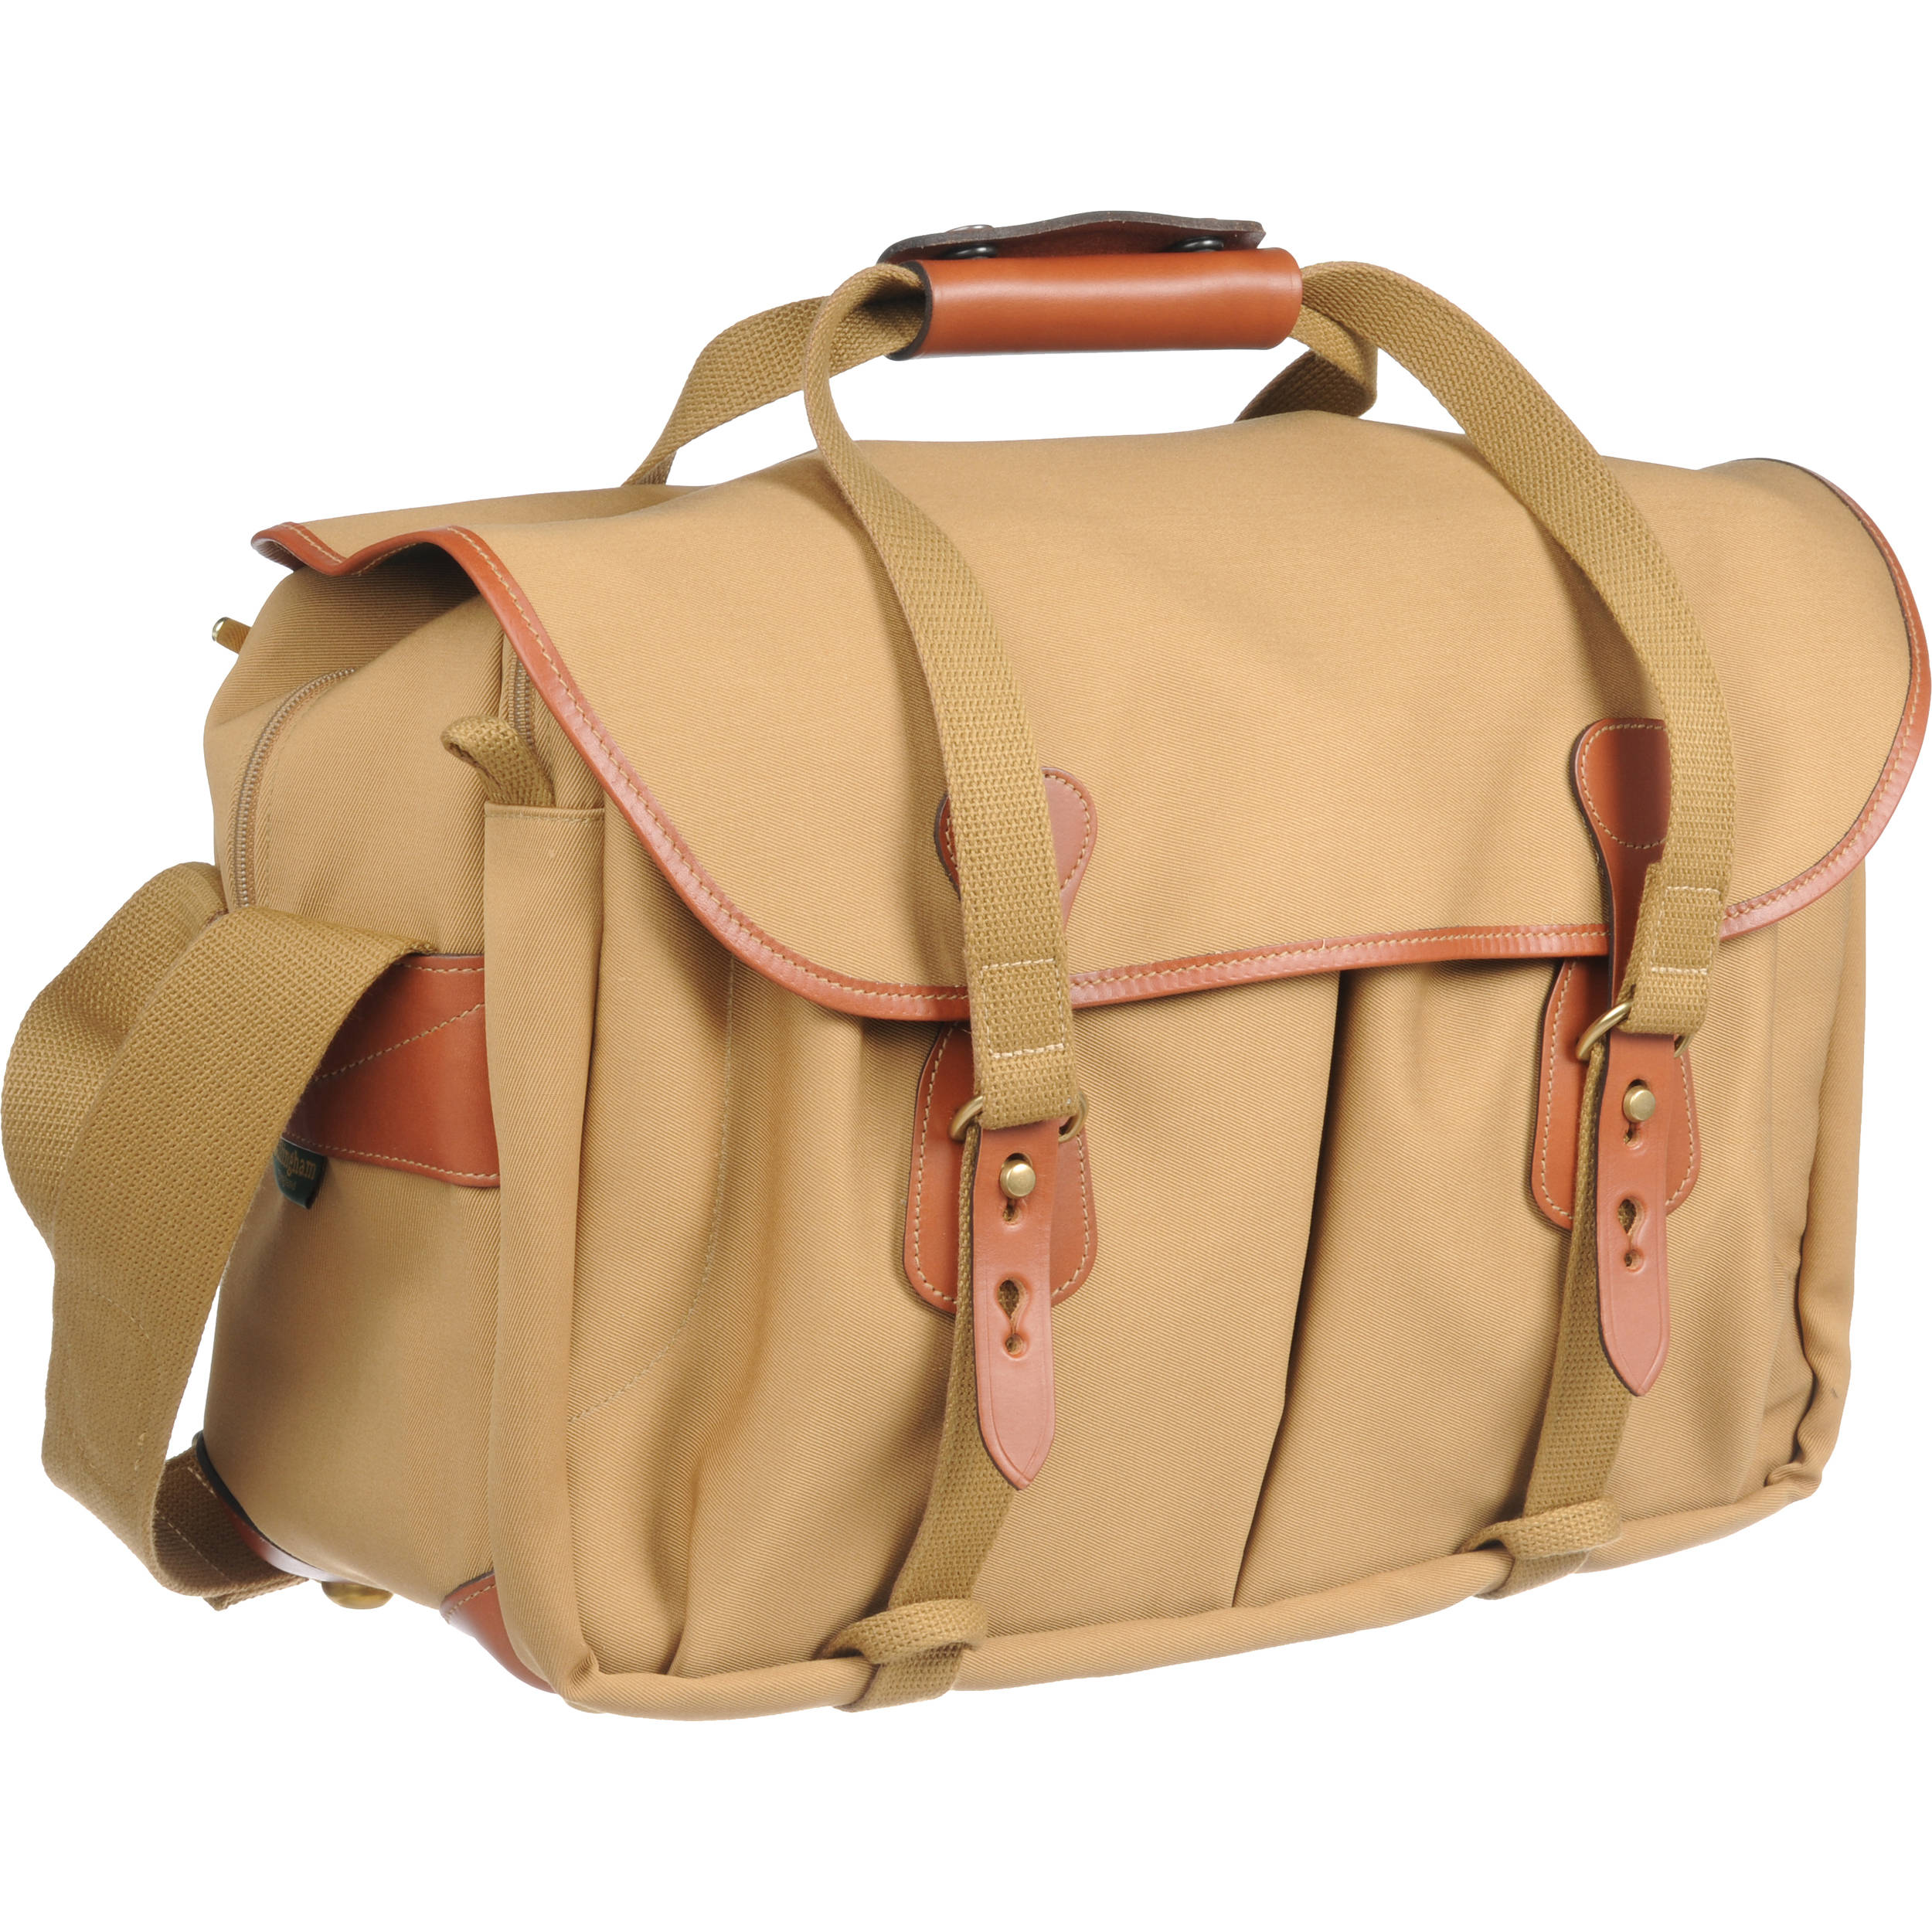 Billingham 445 Shoulder Bag Khaki Canvas With Tan Leather Trim